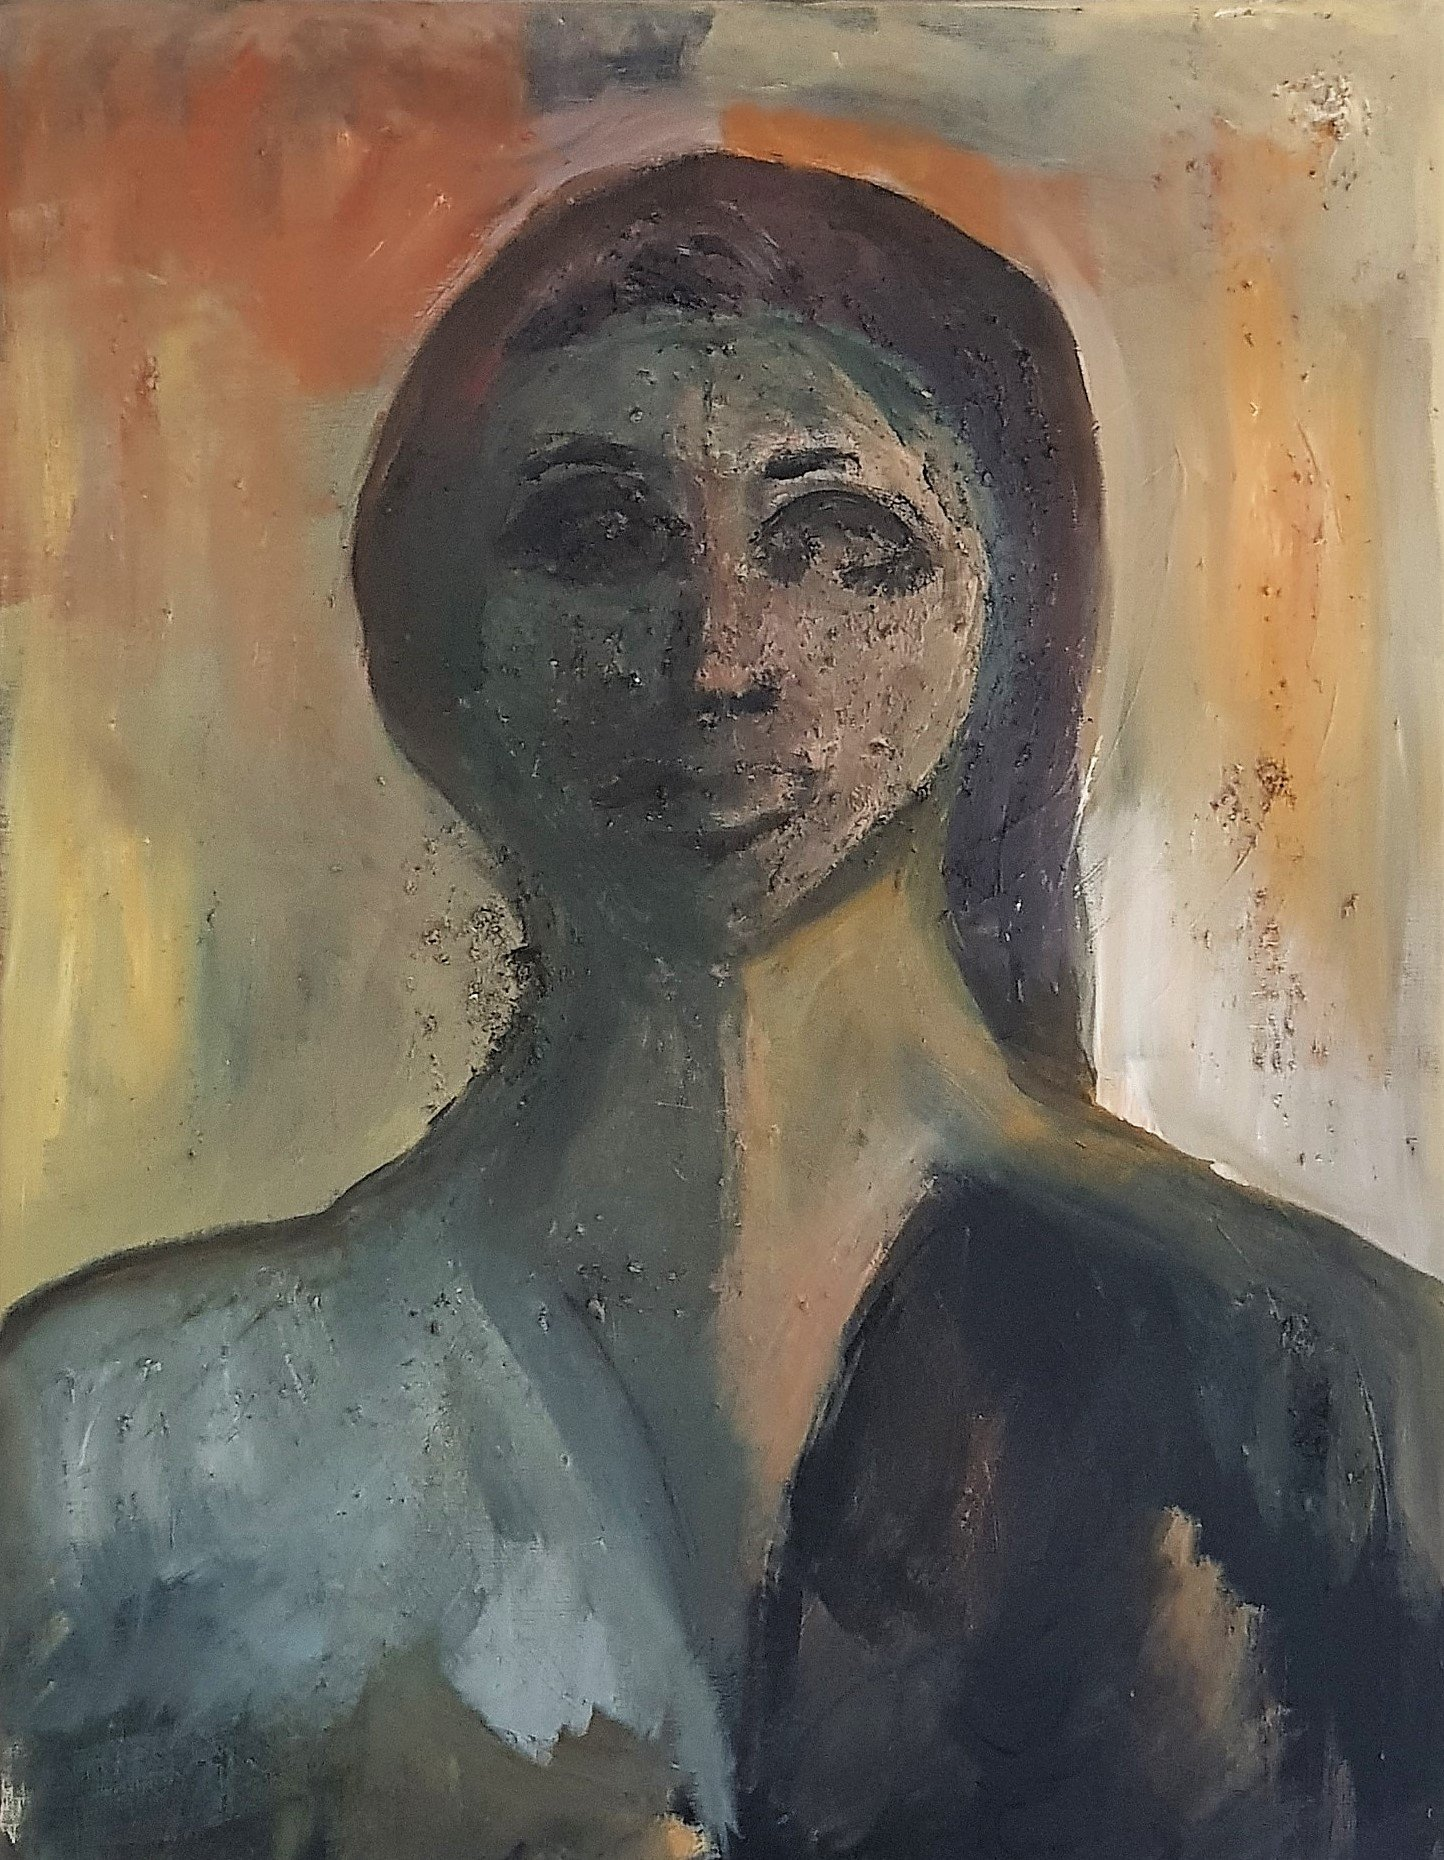 Woman - 60 by 80 cm